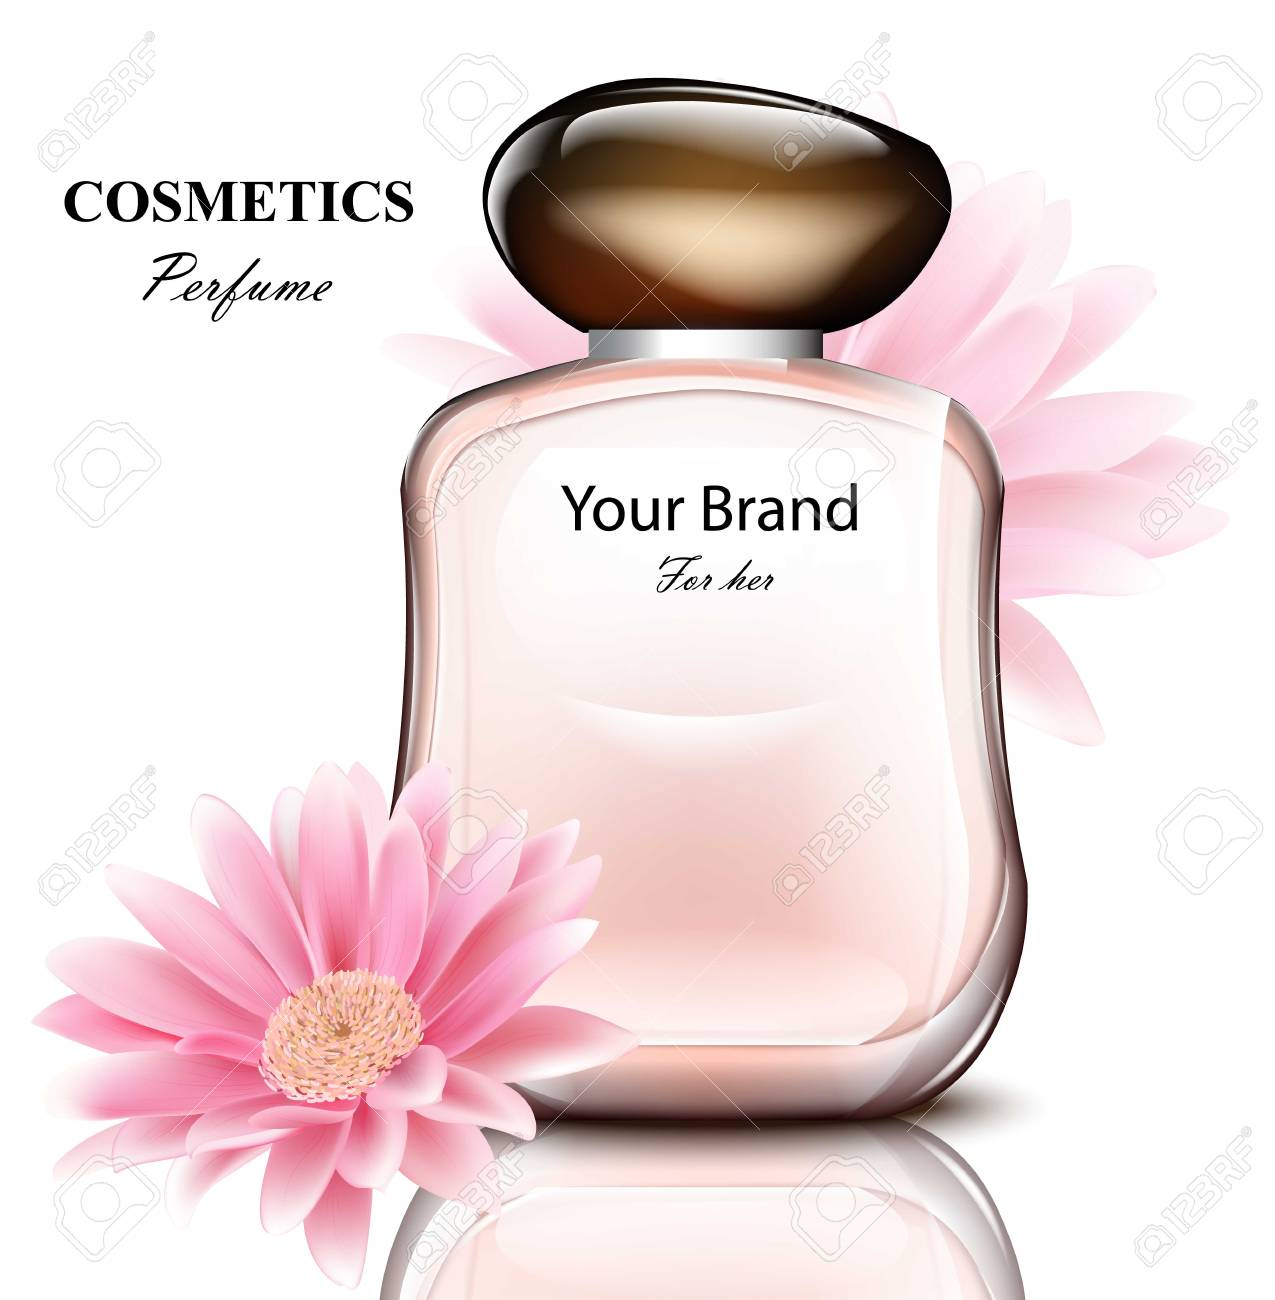 Women perfume bottle with delicate daisy flower fragrance realistic vector women perfume bottle with delicate daisy flower fragrance realistic vector product packaging design izmirmasajfo